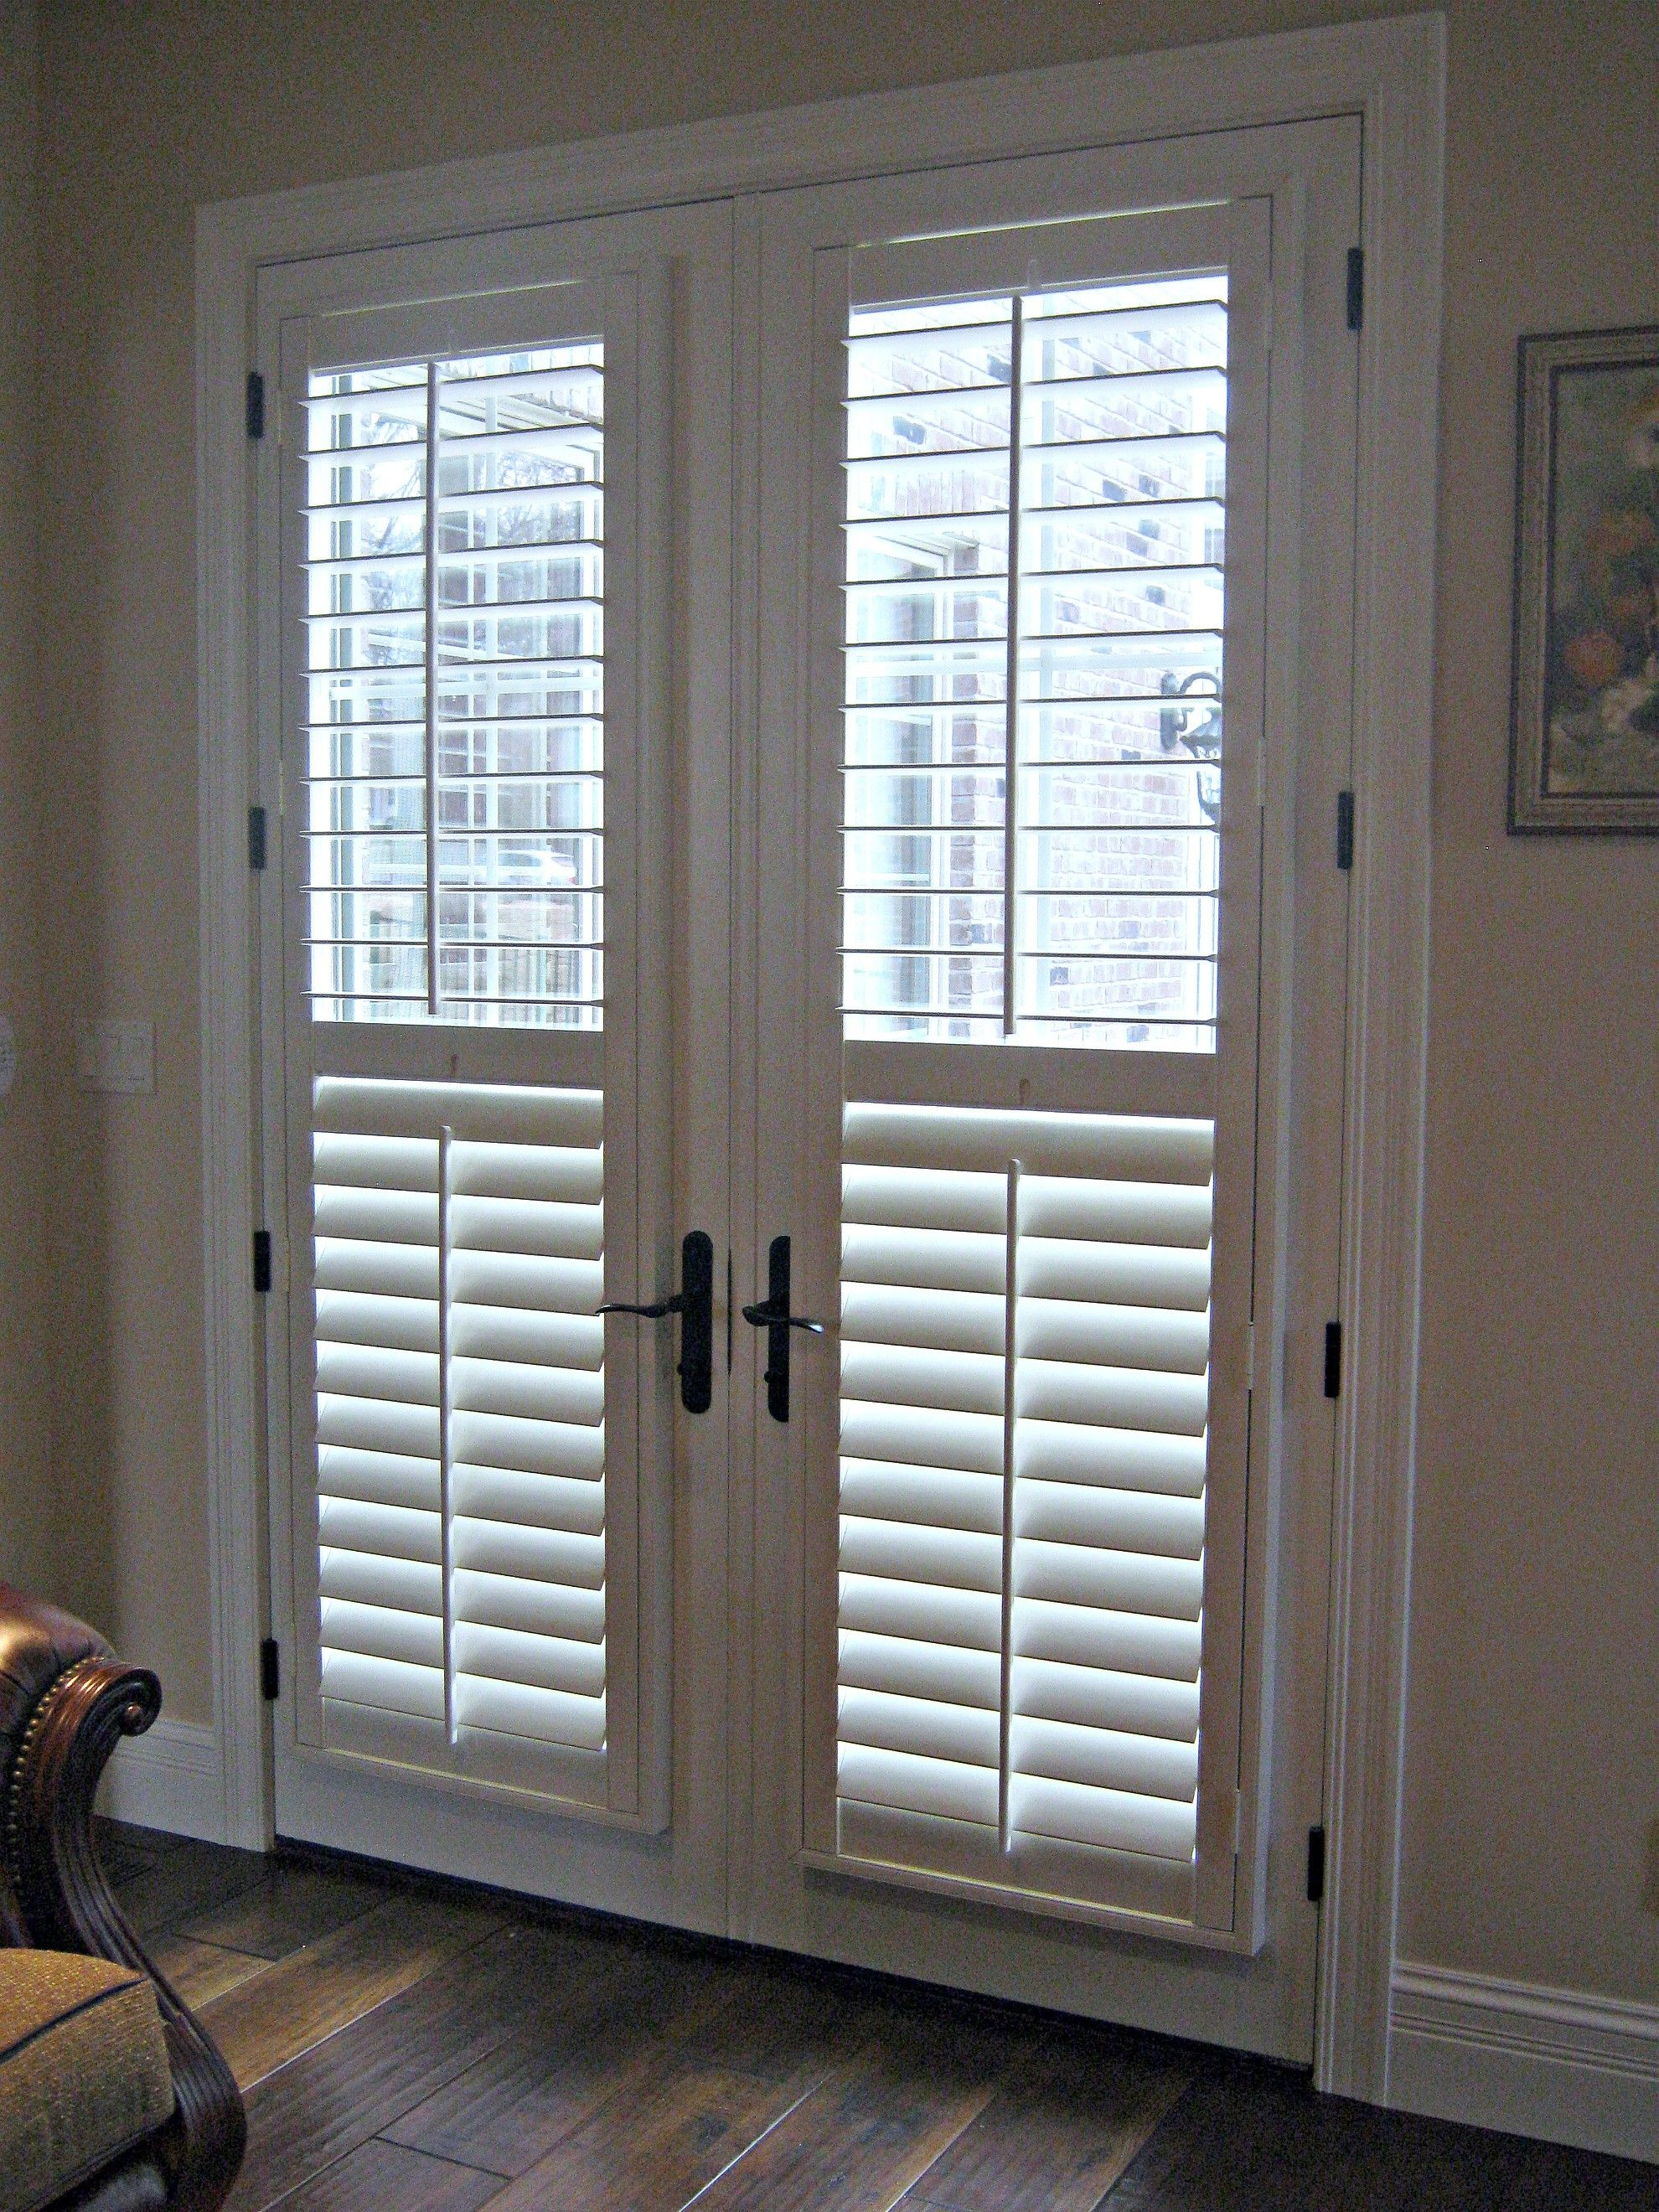 interior lowes patio beautiful built honey masonite inspirational jeff of lewis b with sliding shades depot doors home blinds barn door in french